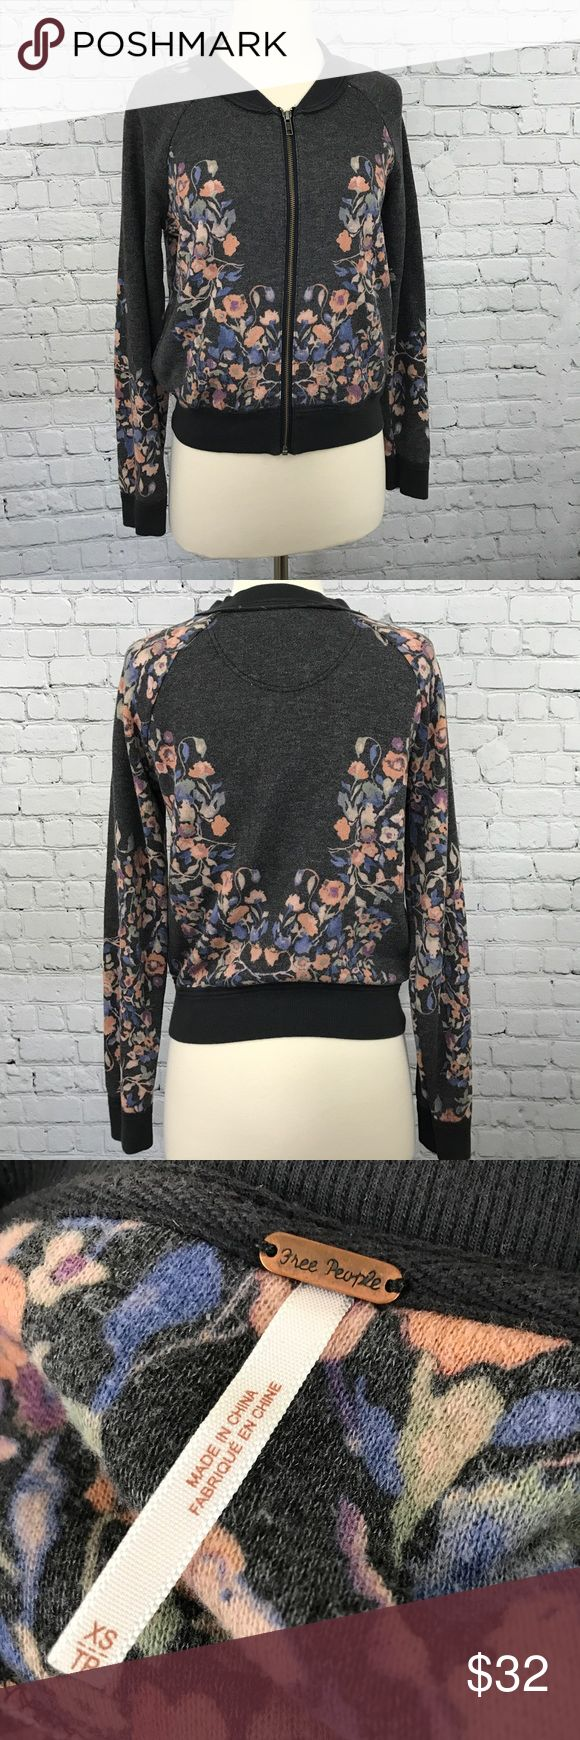 Free People Floral Zip Up Moto Sweater Adorable free People sweater in excellent condition. Size XS. No trades. Reasonable offers only! Free People Sweaters